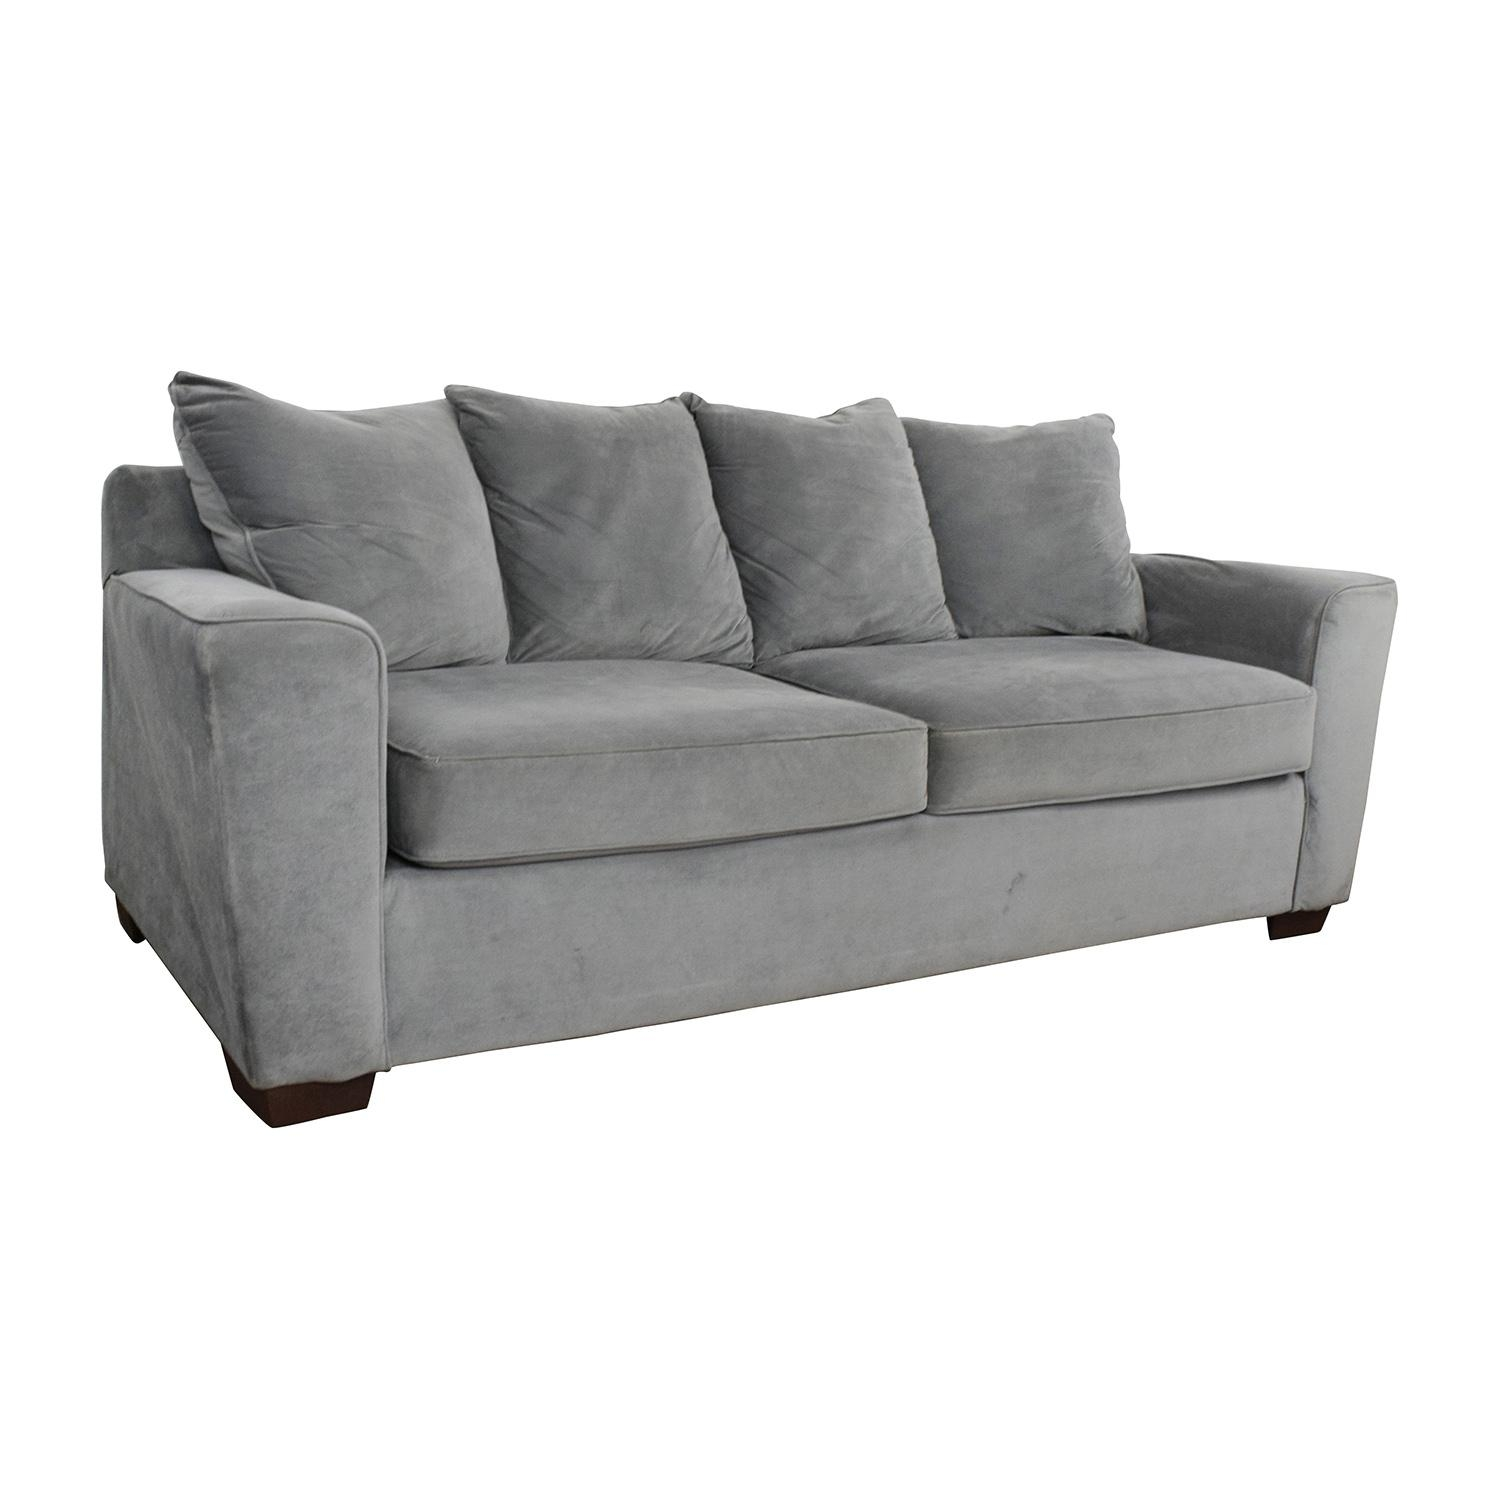 57% Off - Jennifer Convertibles Jennifer Convertibles Grey Couch intended for Jennifer Sofas